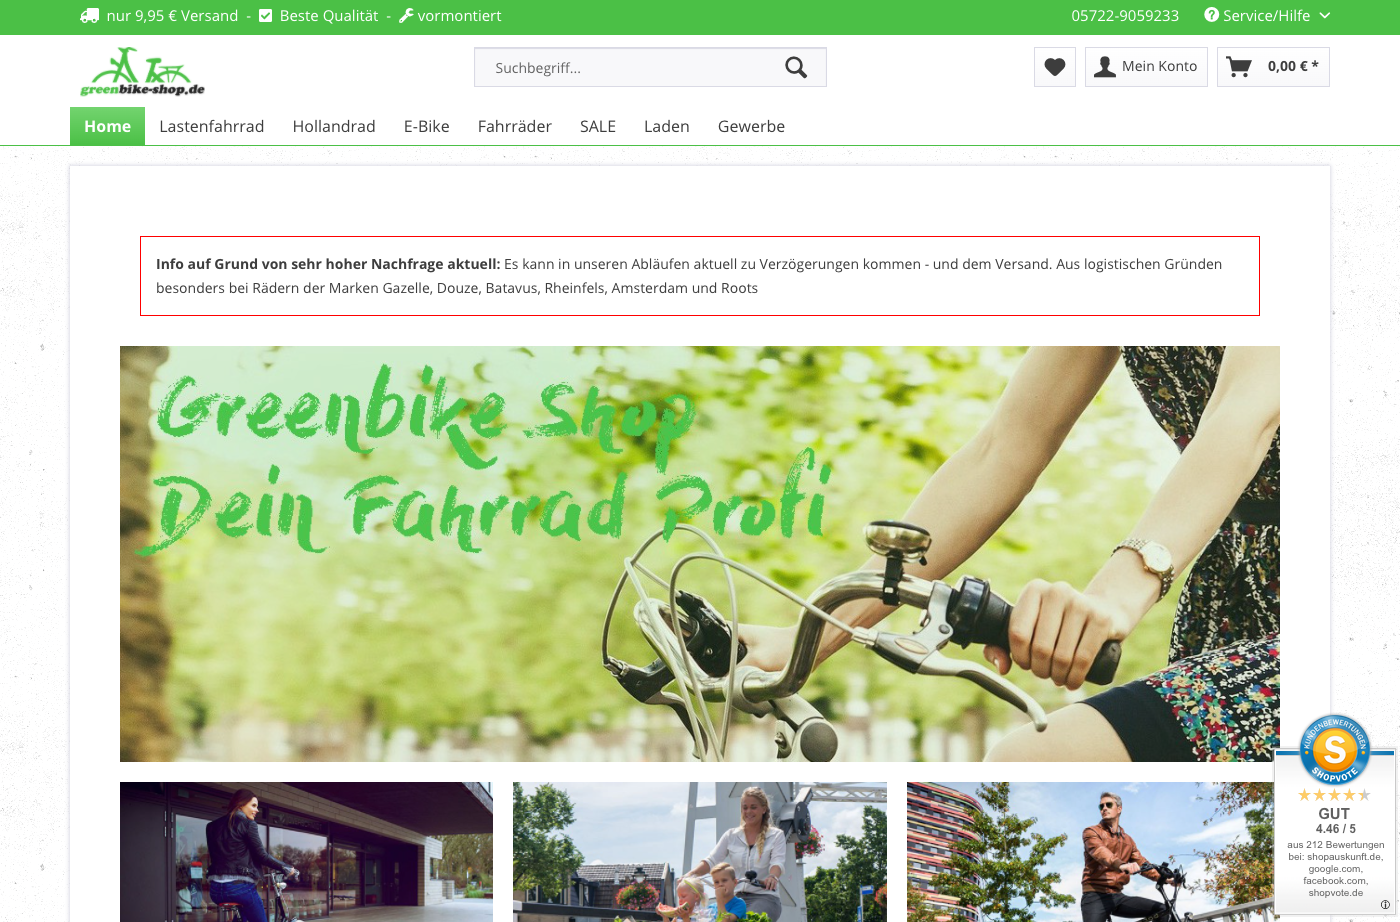 greenbike-shop